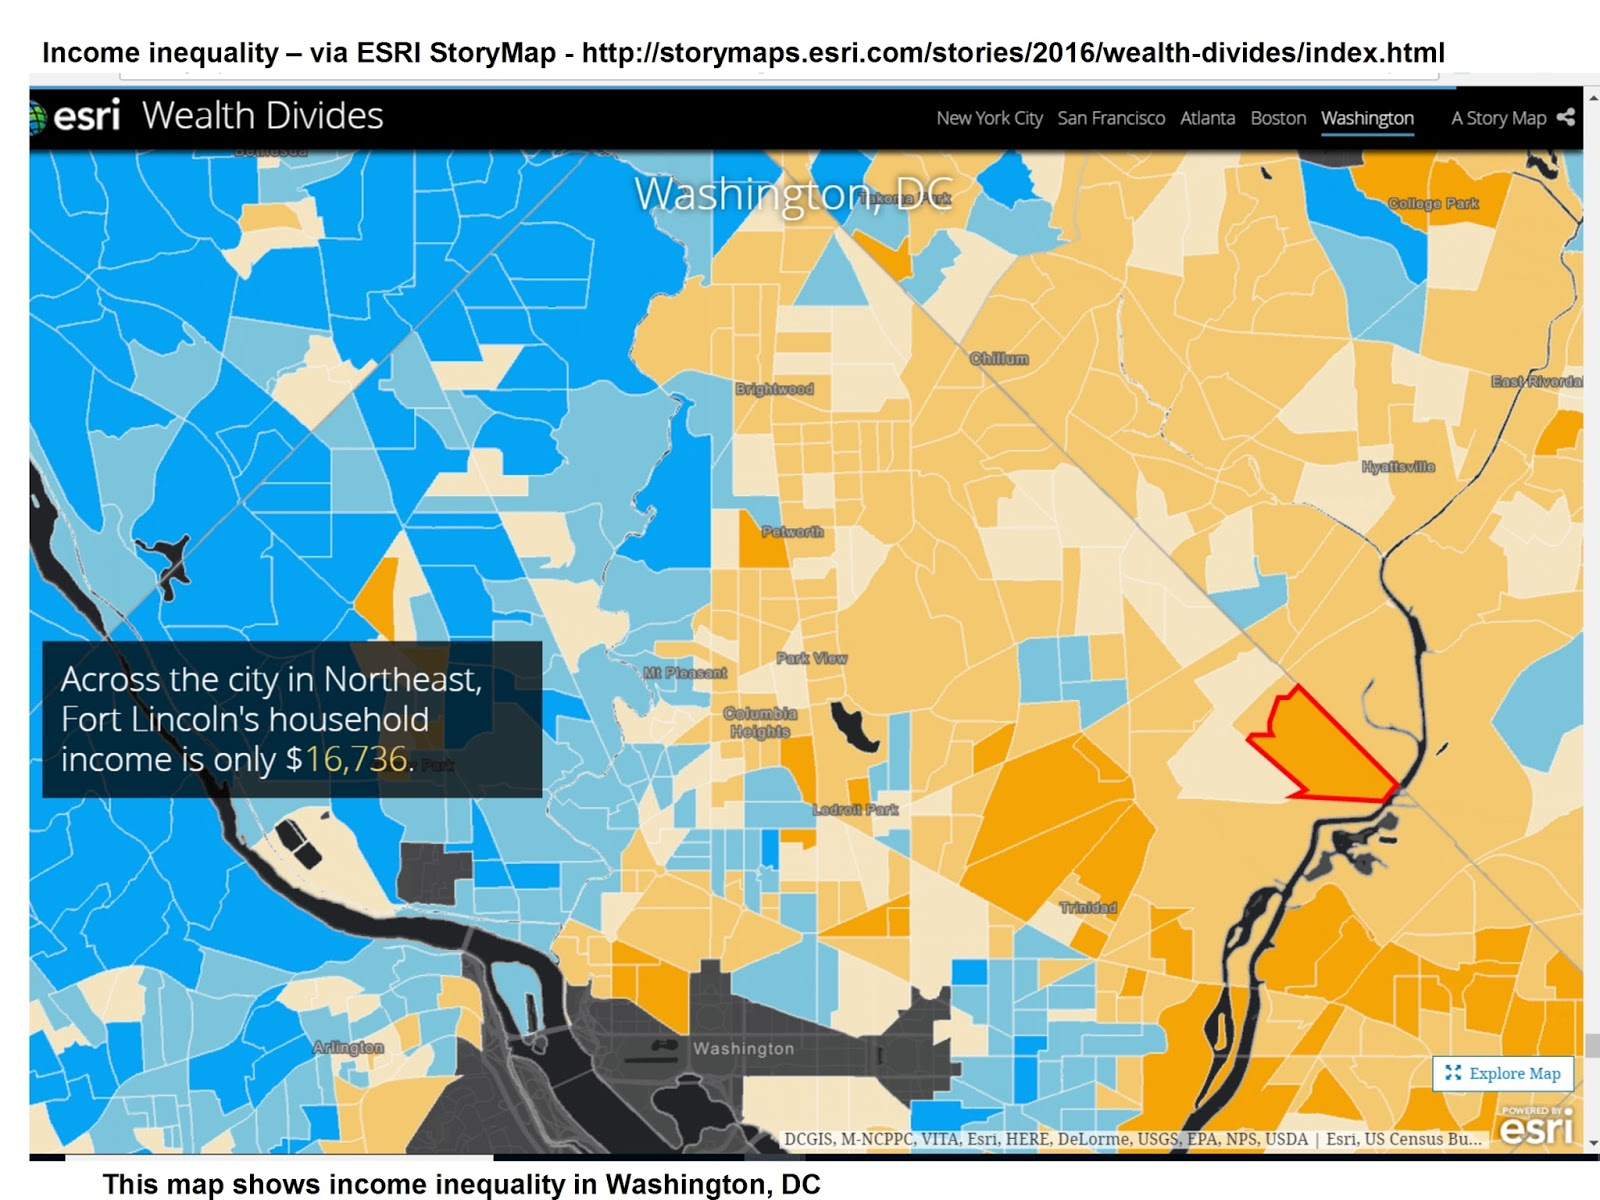 Mapping For Justice Income Inequality In Cities Using ESRI StoryMap - Income inequality map of the us